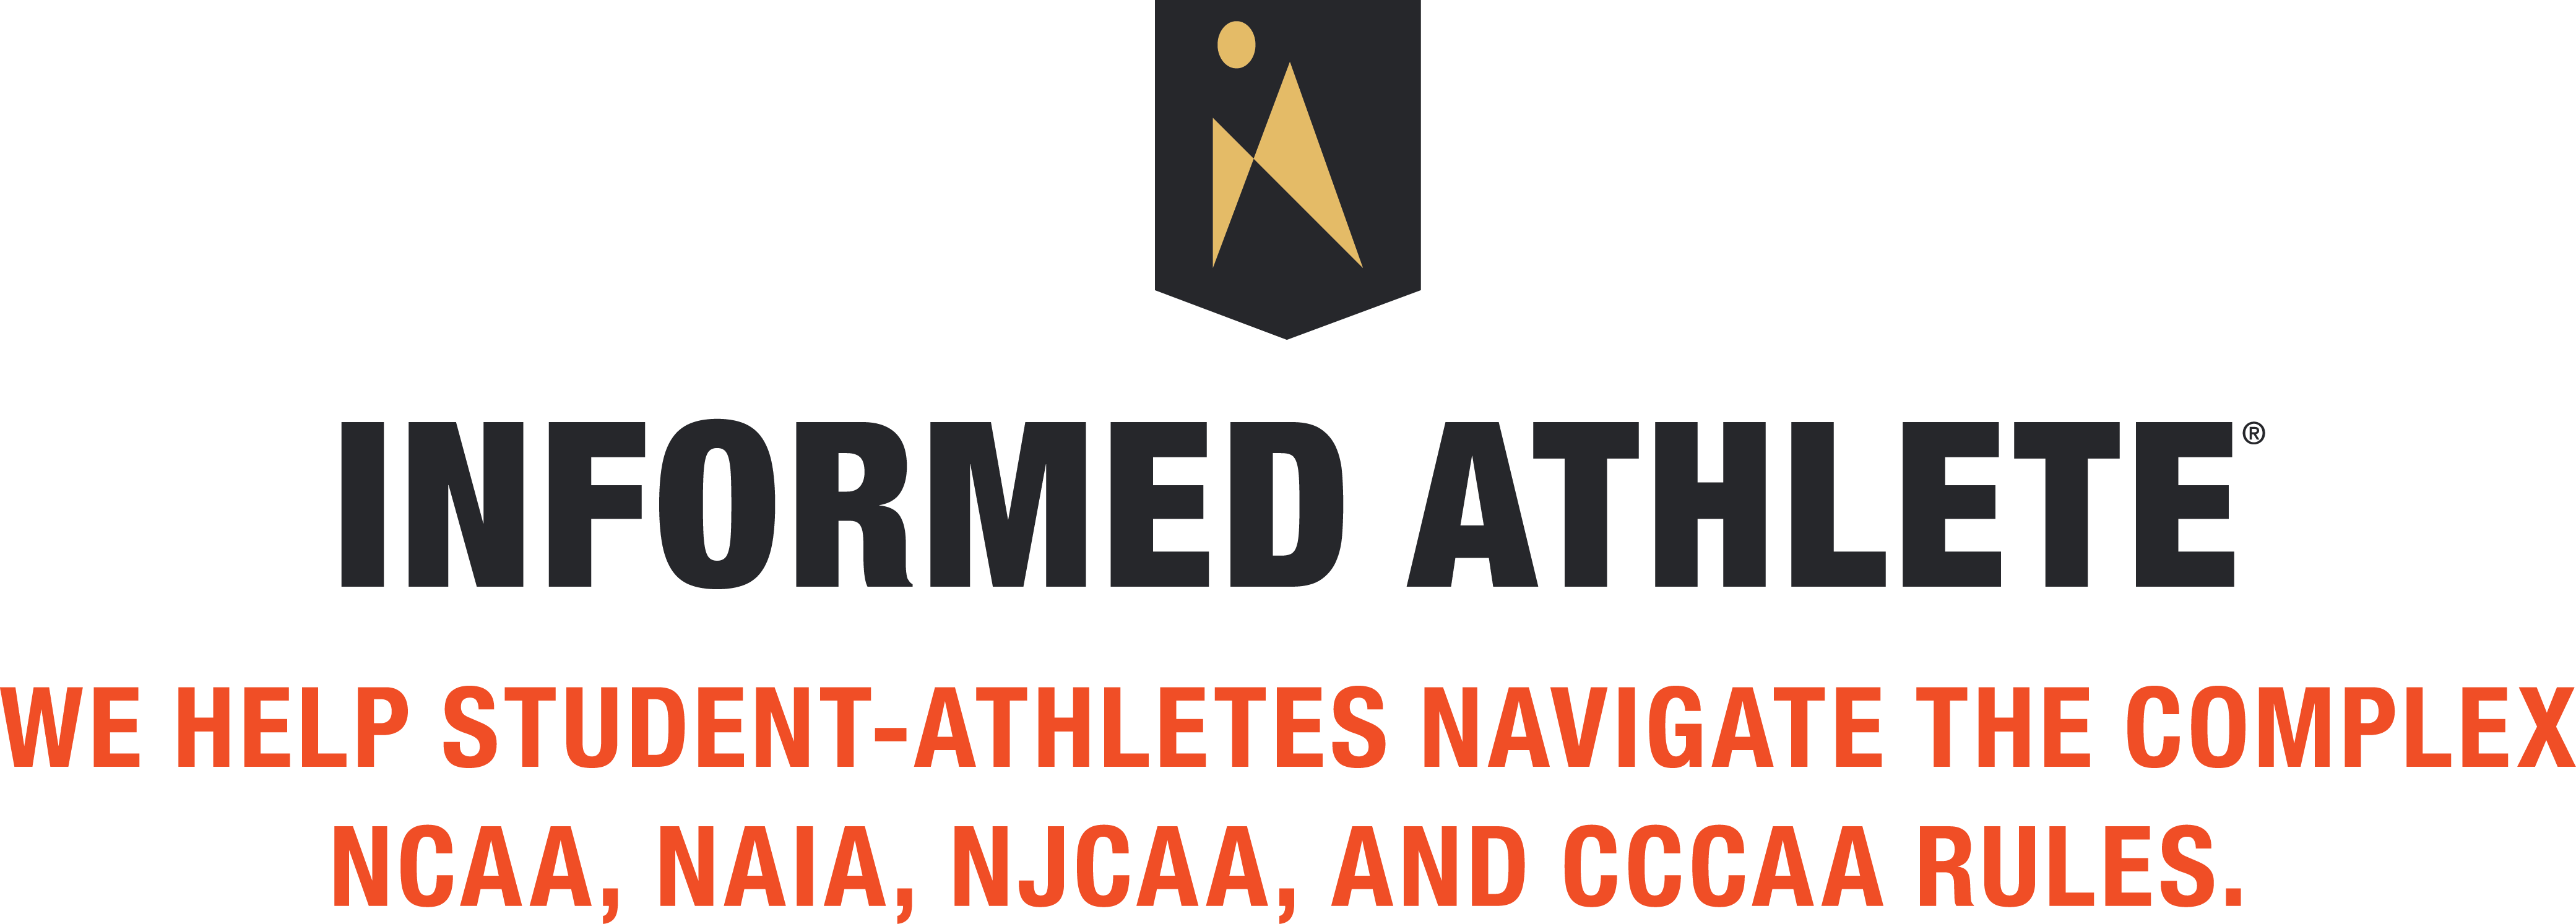 Get a competitive advantage -Be an Informed Athlete!